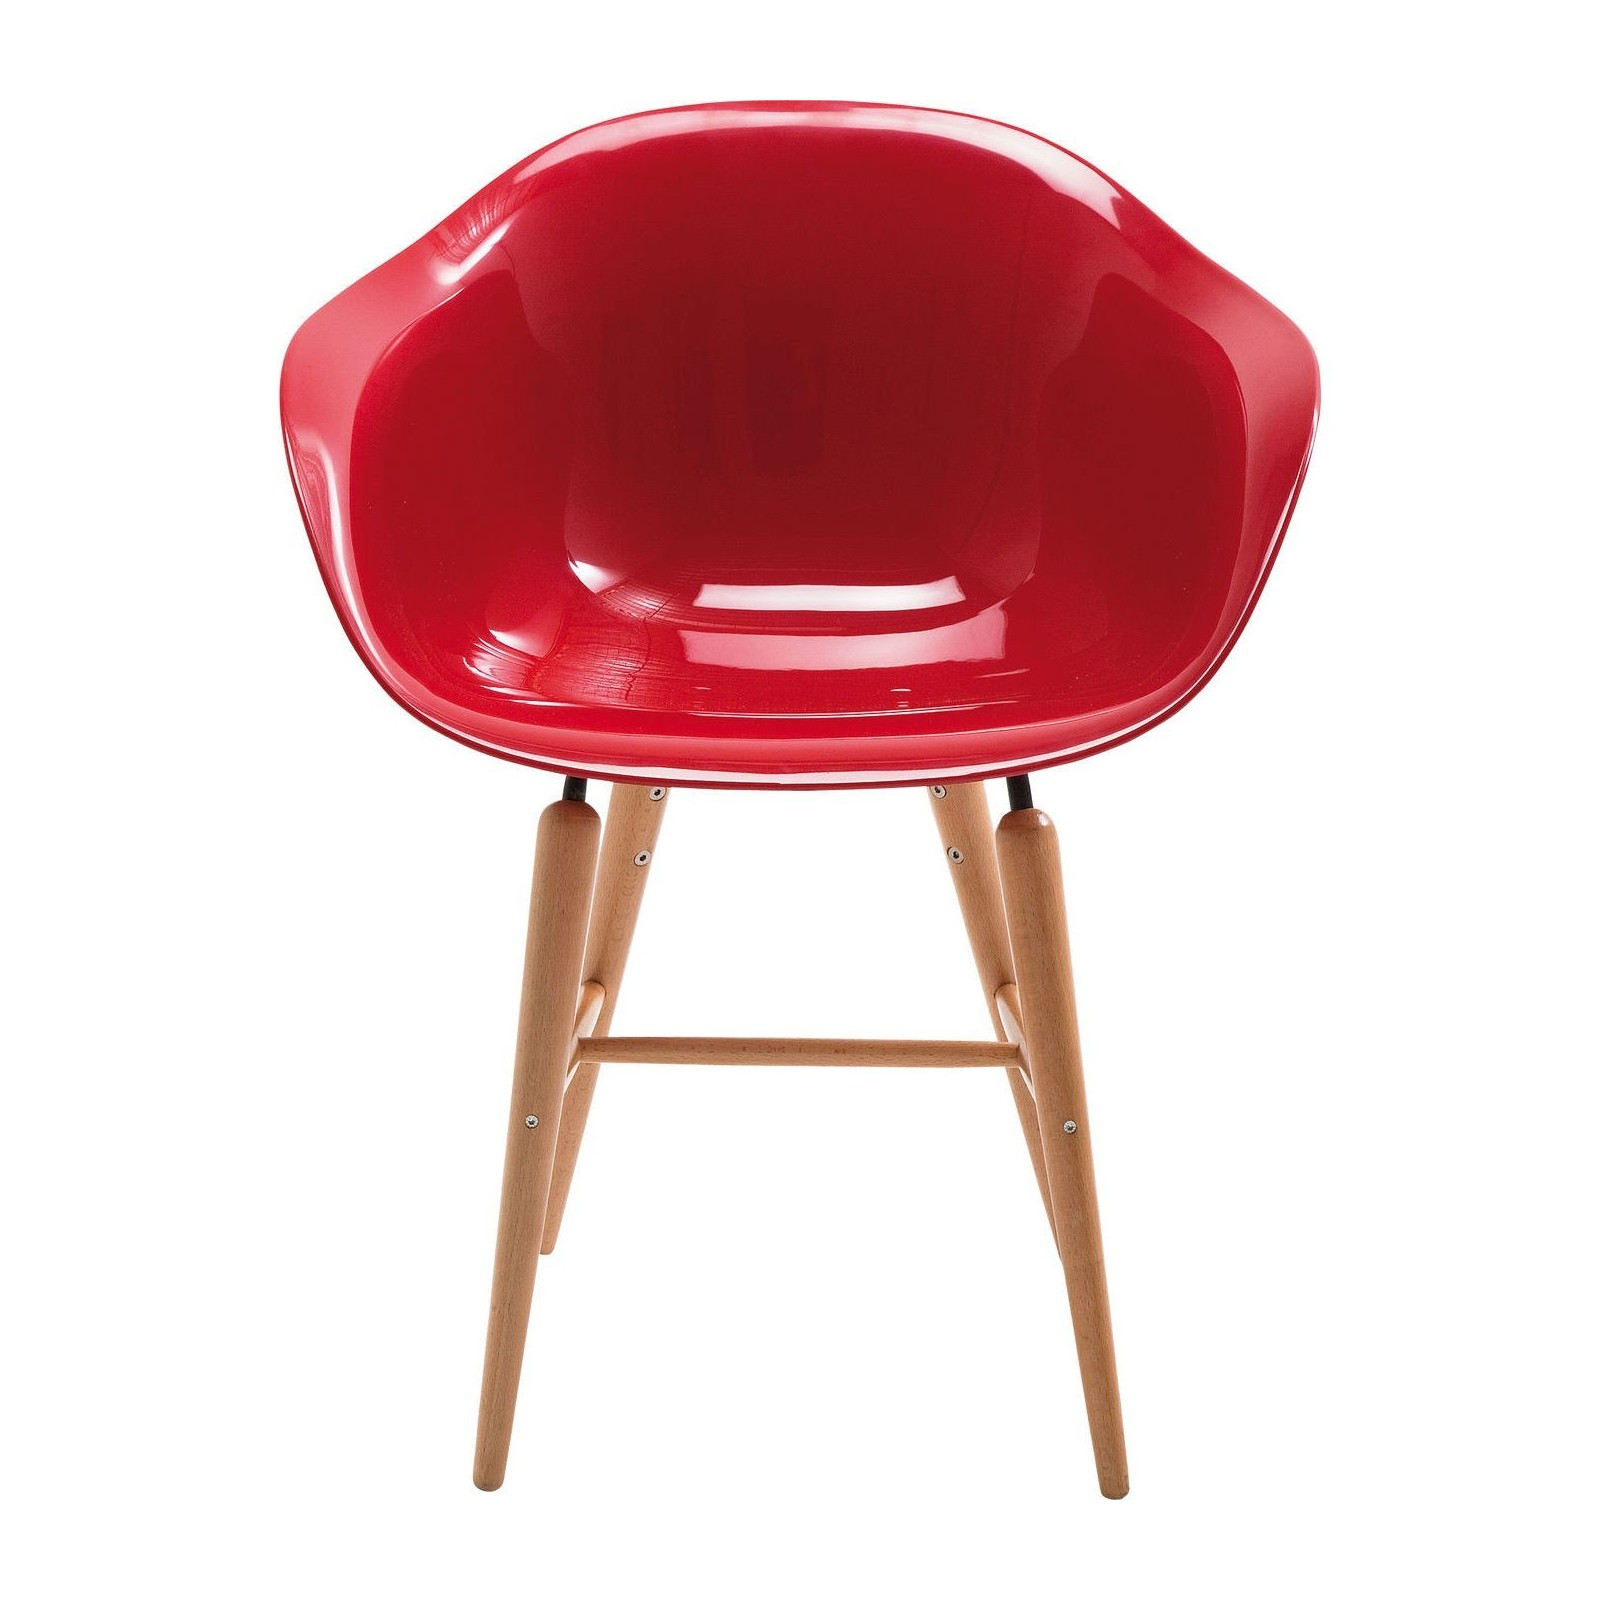 Chaise avec accoudoirs r tro rouge forum kare design for Chaise rouge